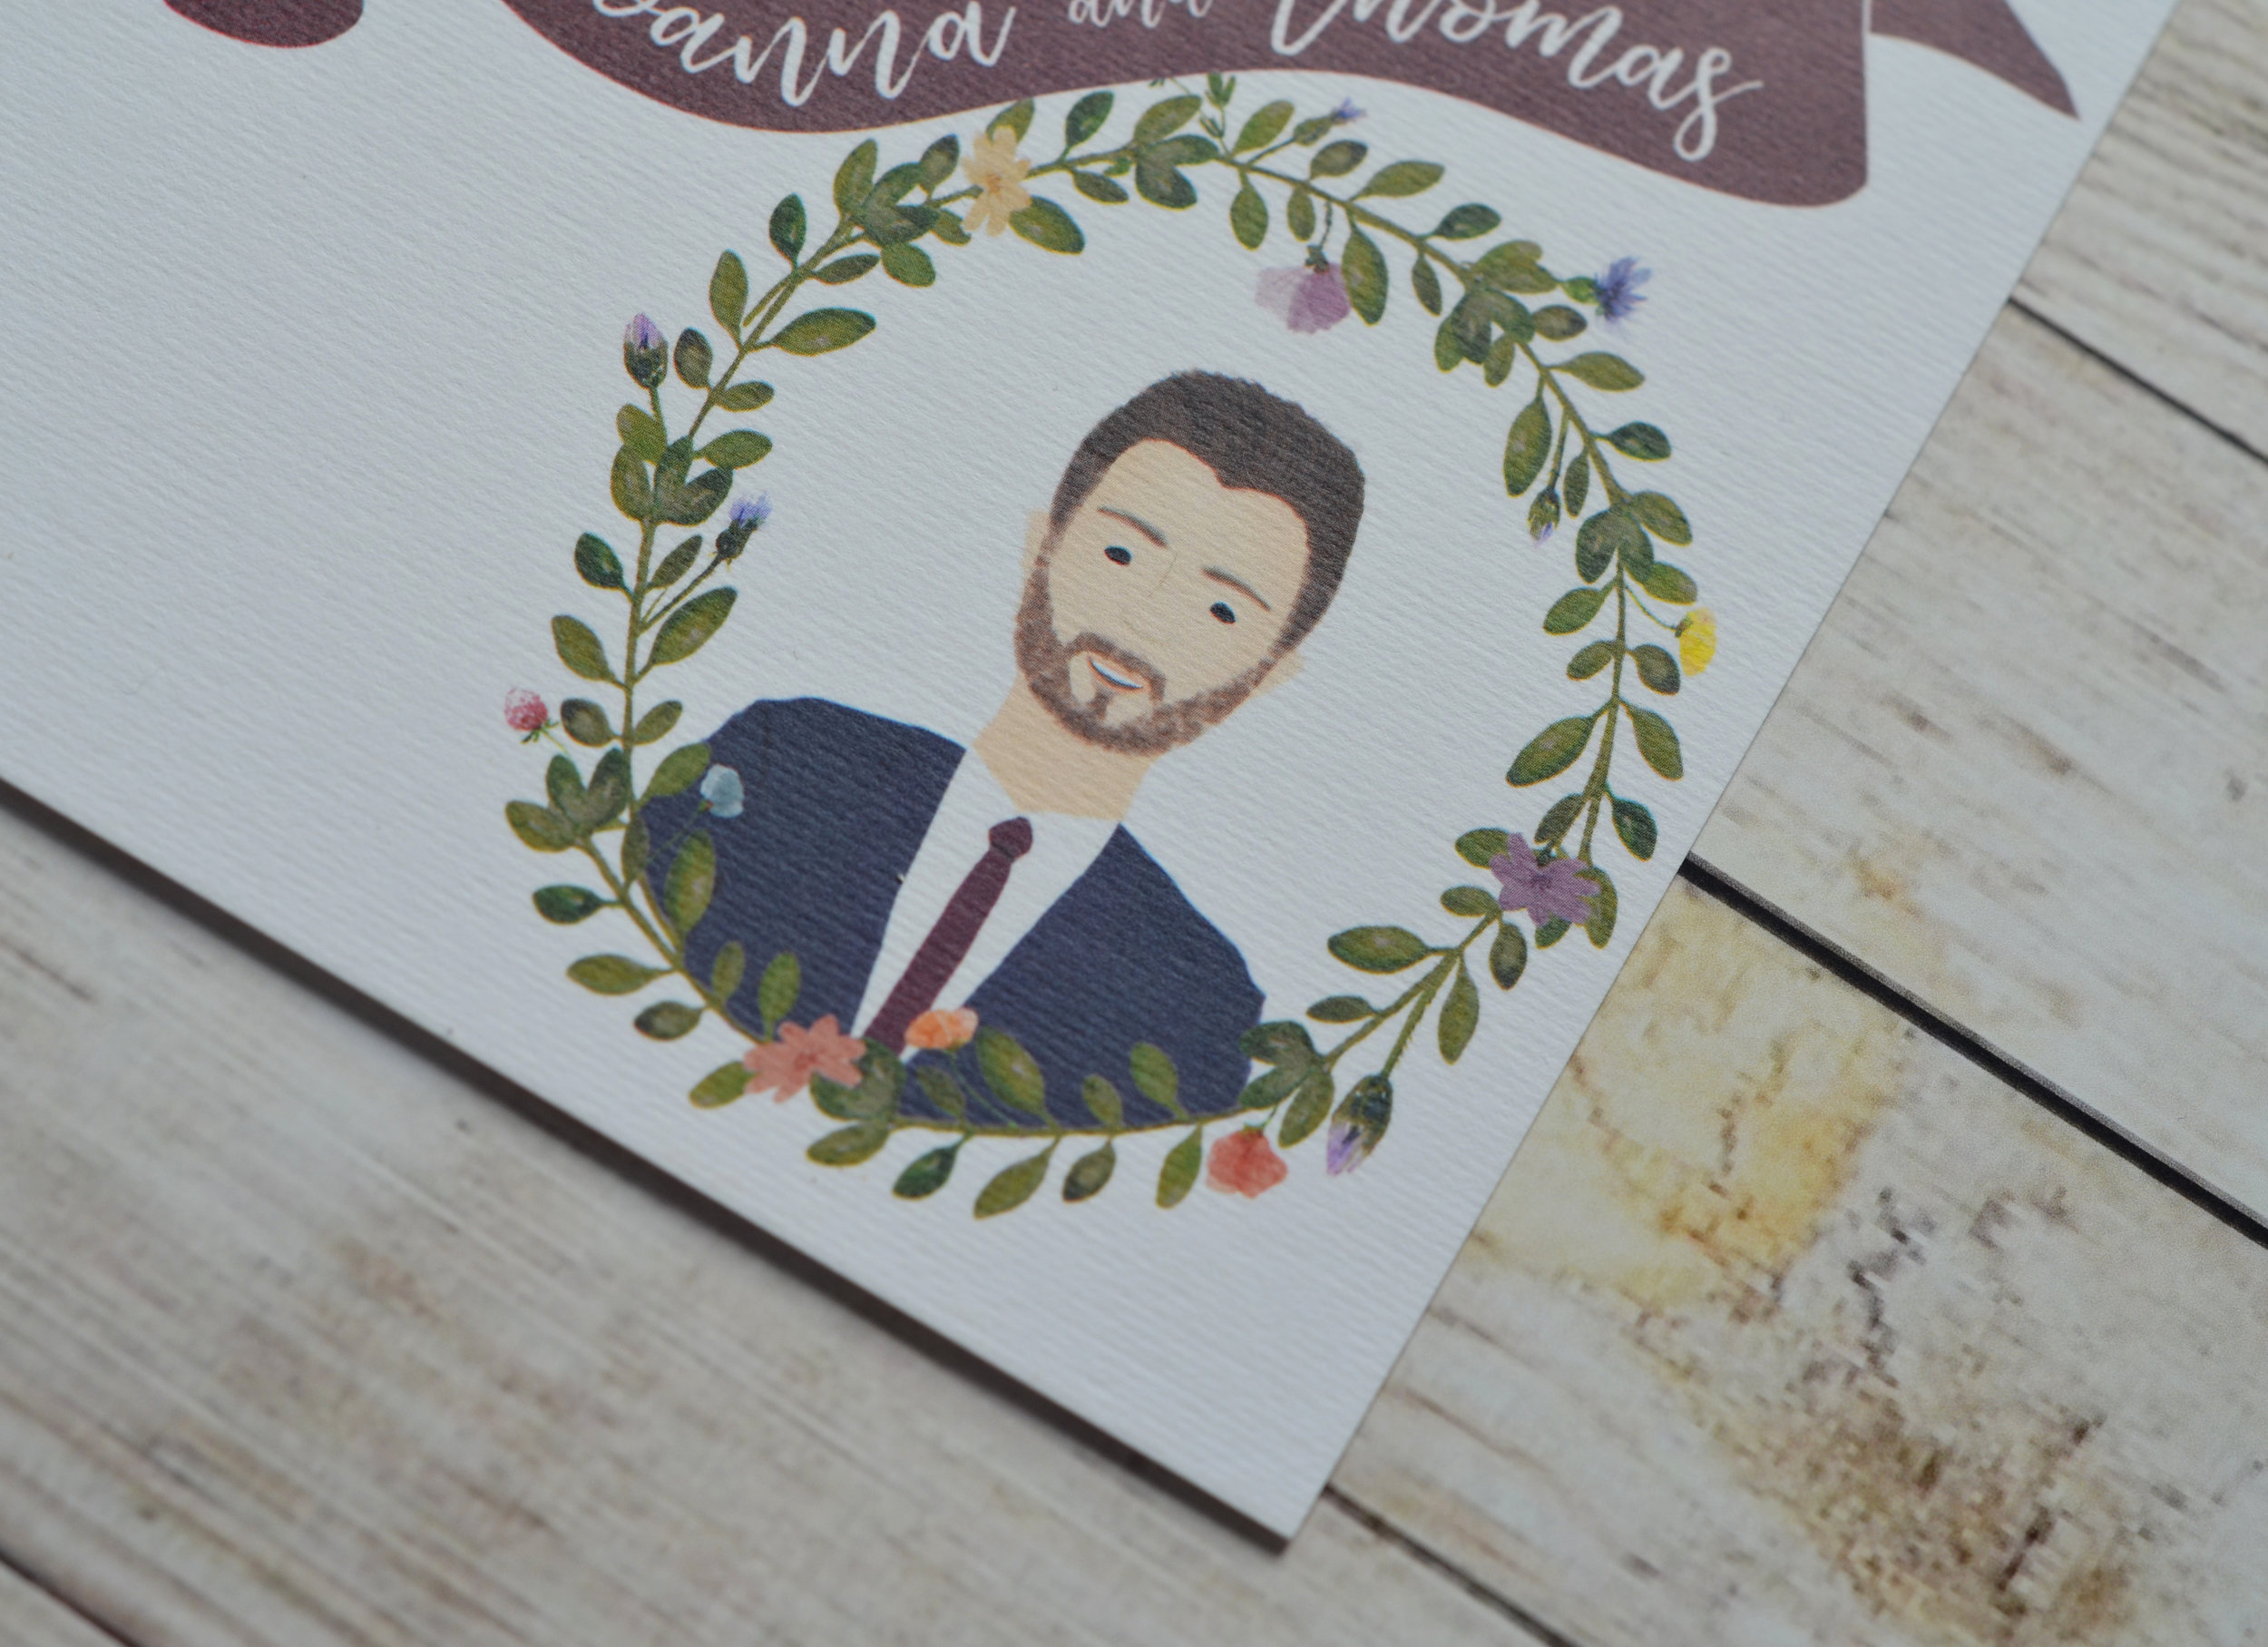 bespoke wedding stationery illustrated portrait